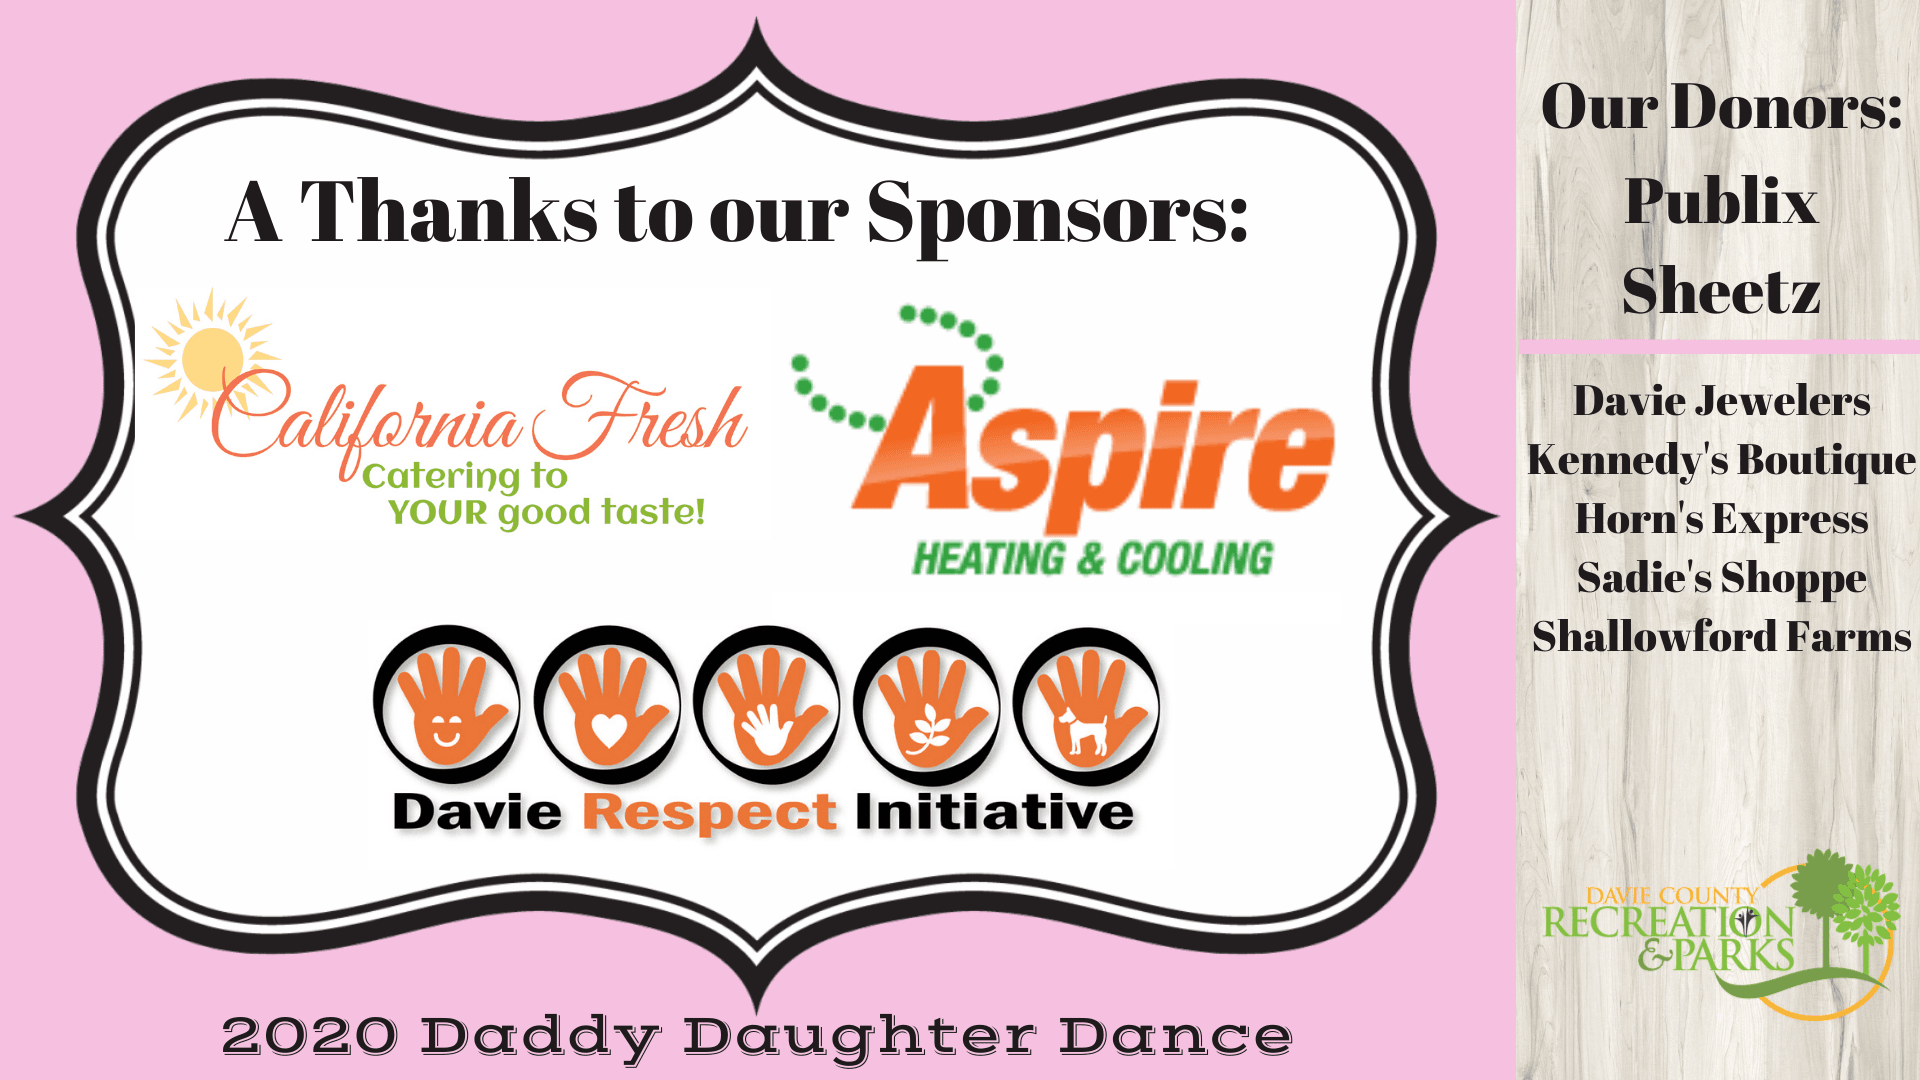 Daddy Daughter Dance 2020 Sponsor Thanks